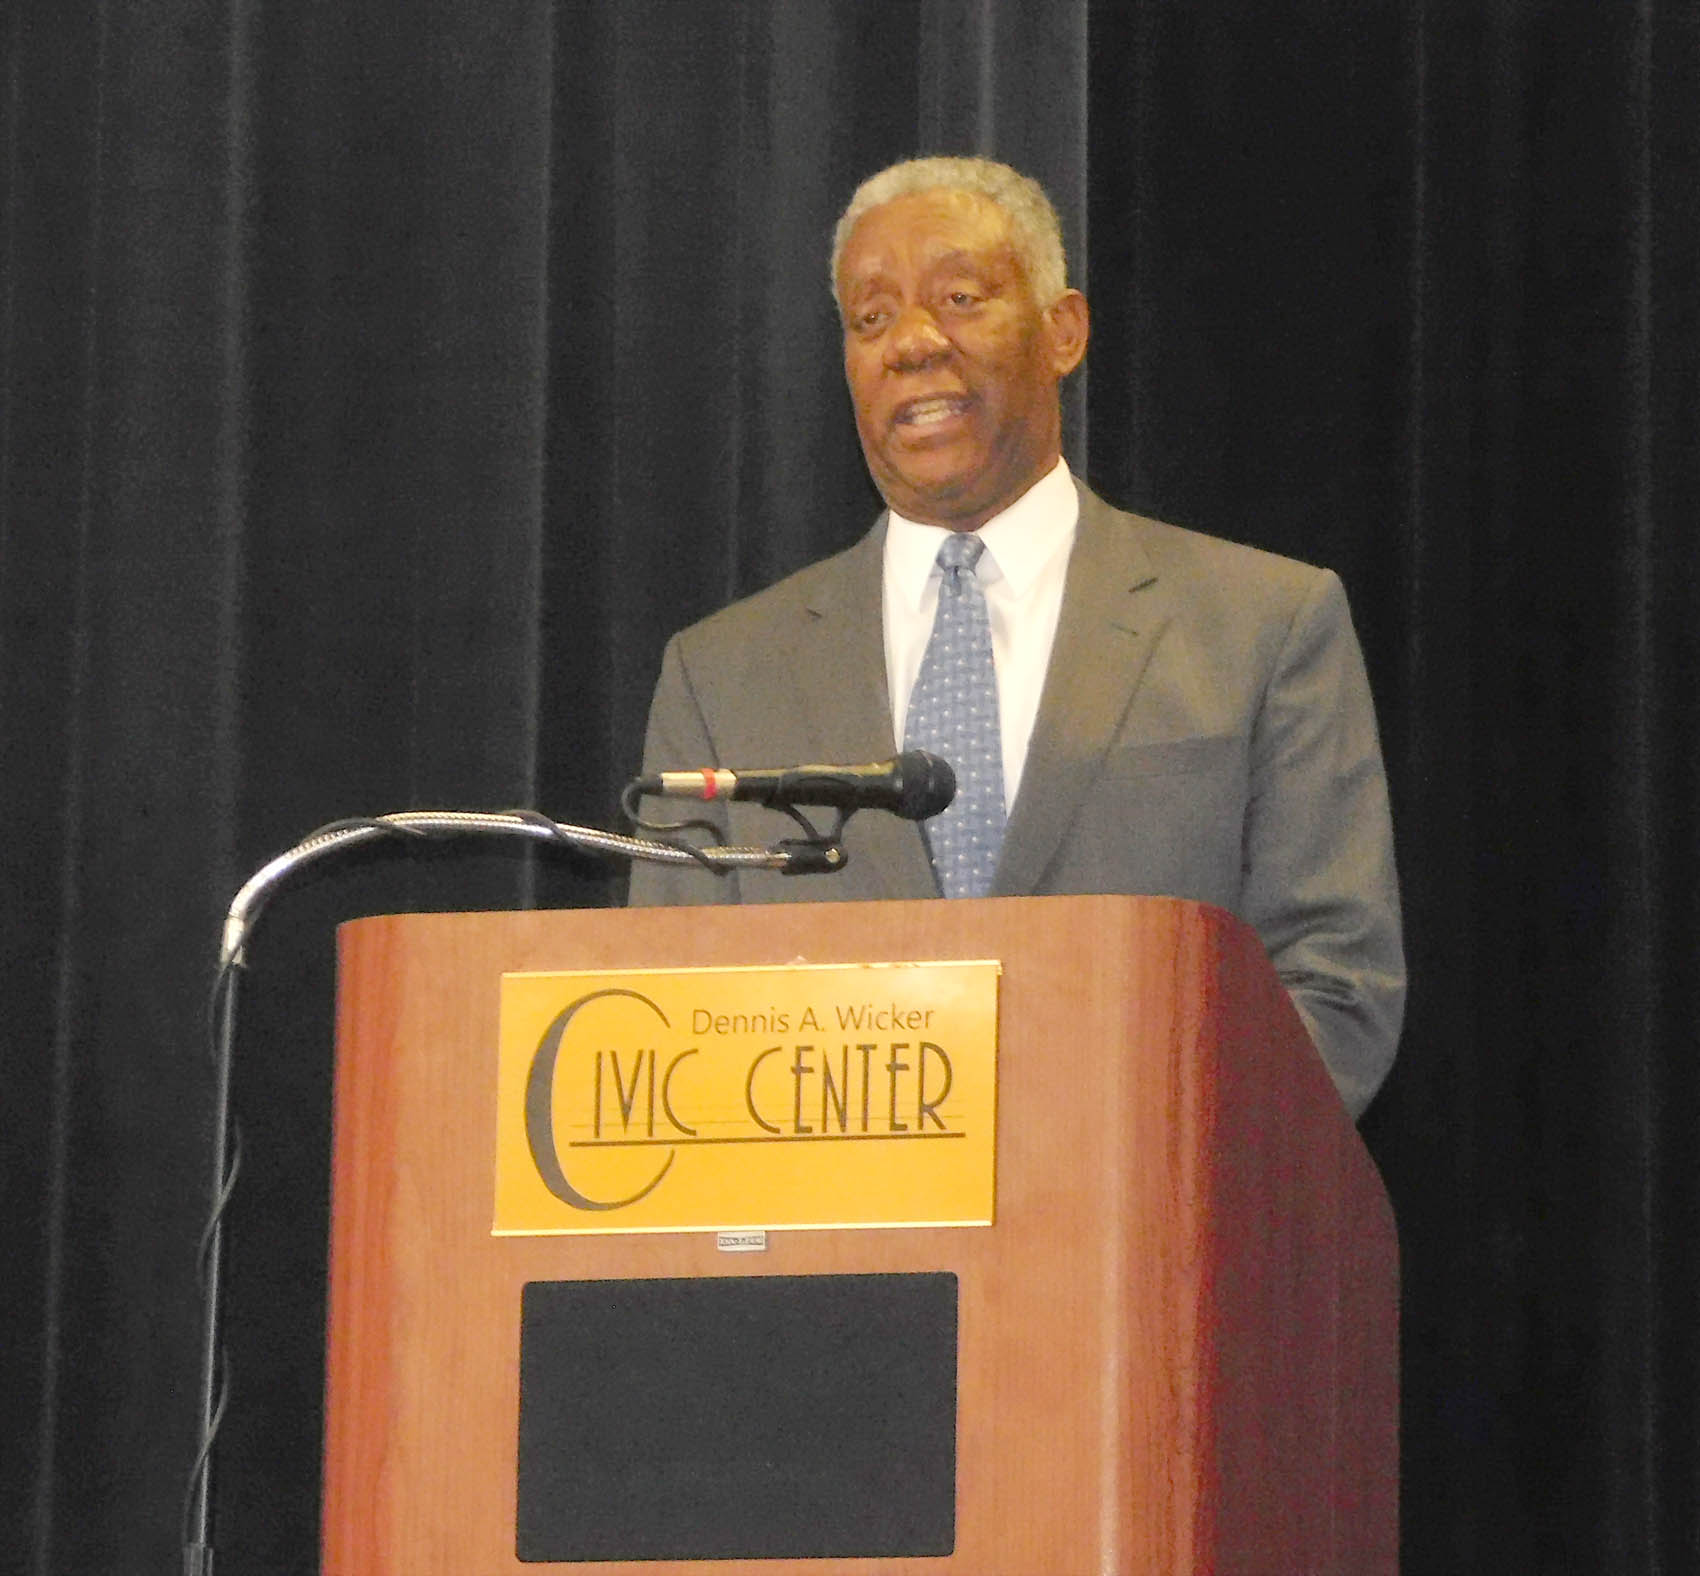 Click to enlarge,  Secretary Cornell A. Wilson, Jr., N.C. Department of Military and Veterans Affairs, Major General, USMC (Ret.), welcomed the attendees at the NC STRIVE Conference on Wednesday, June 15, at the Dennis A. Wicker Civic Center in Sanford.